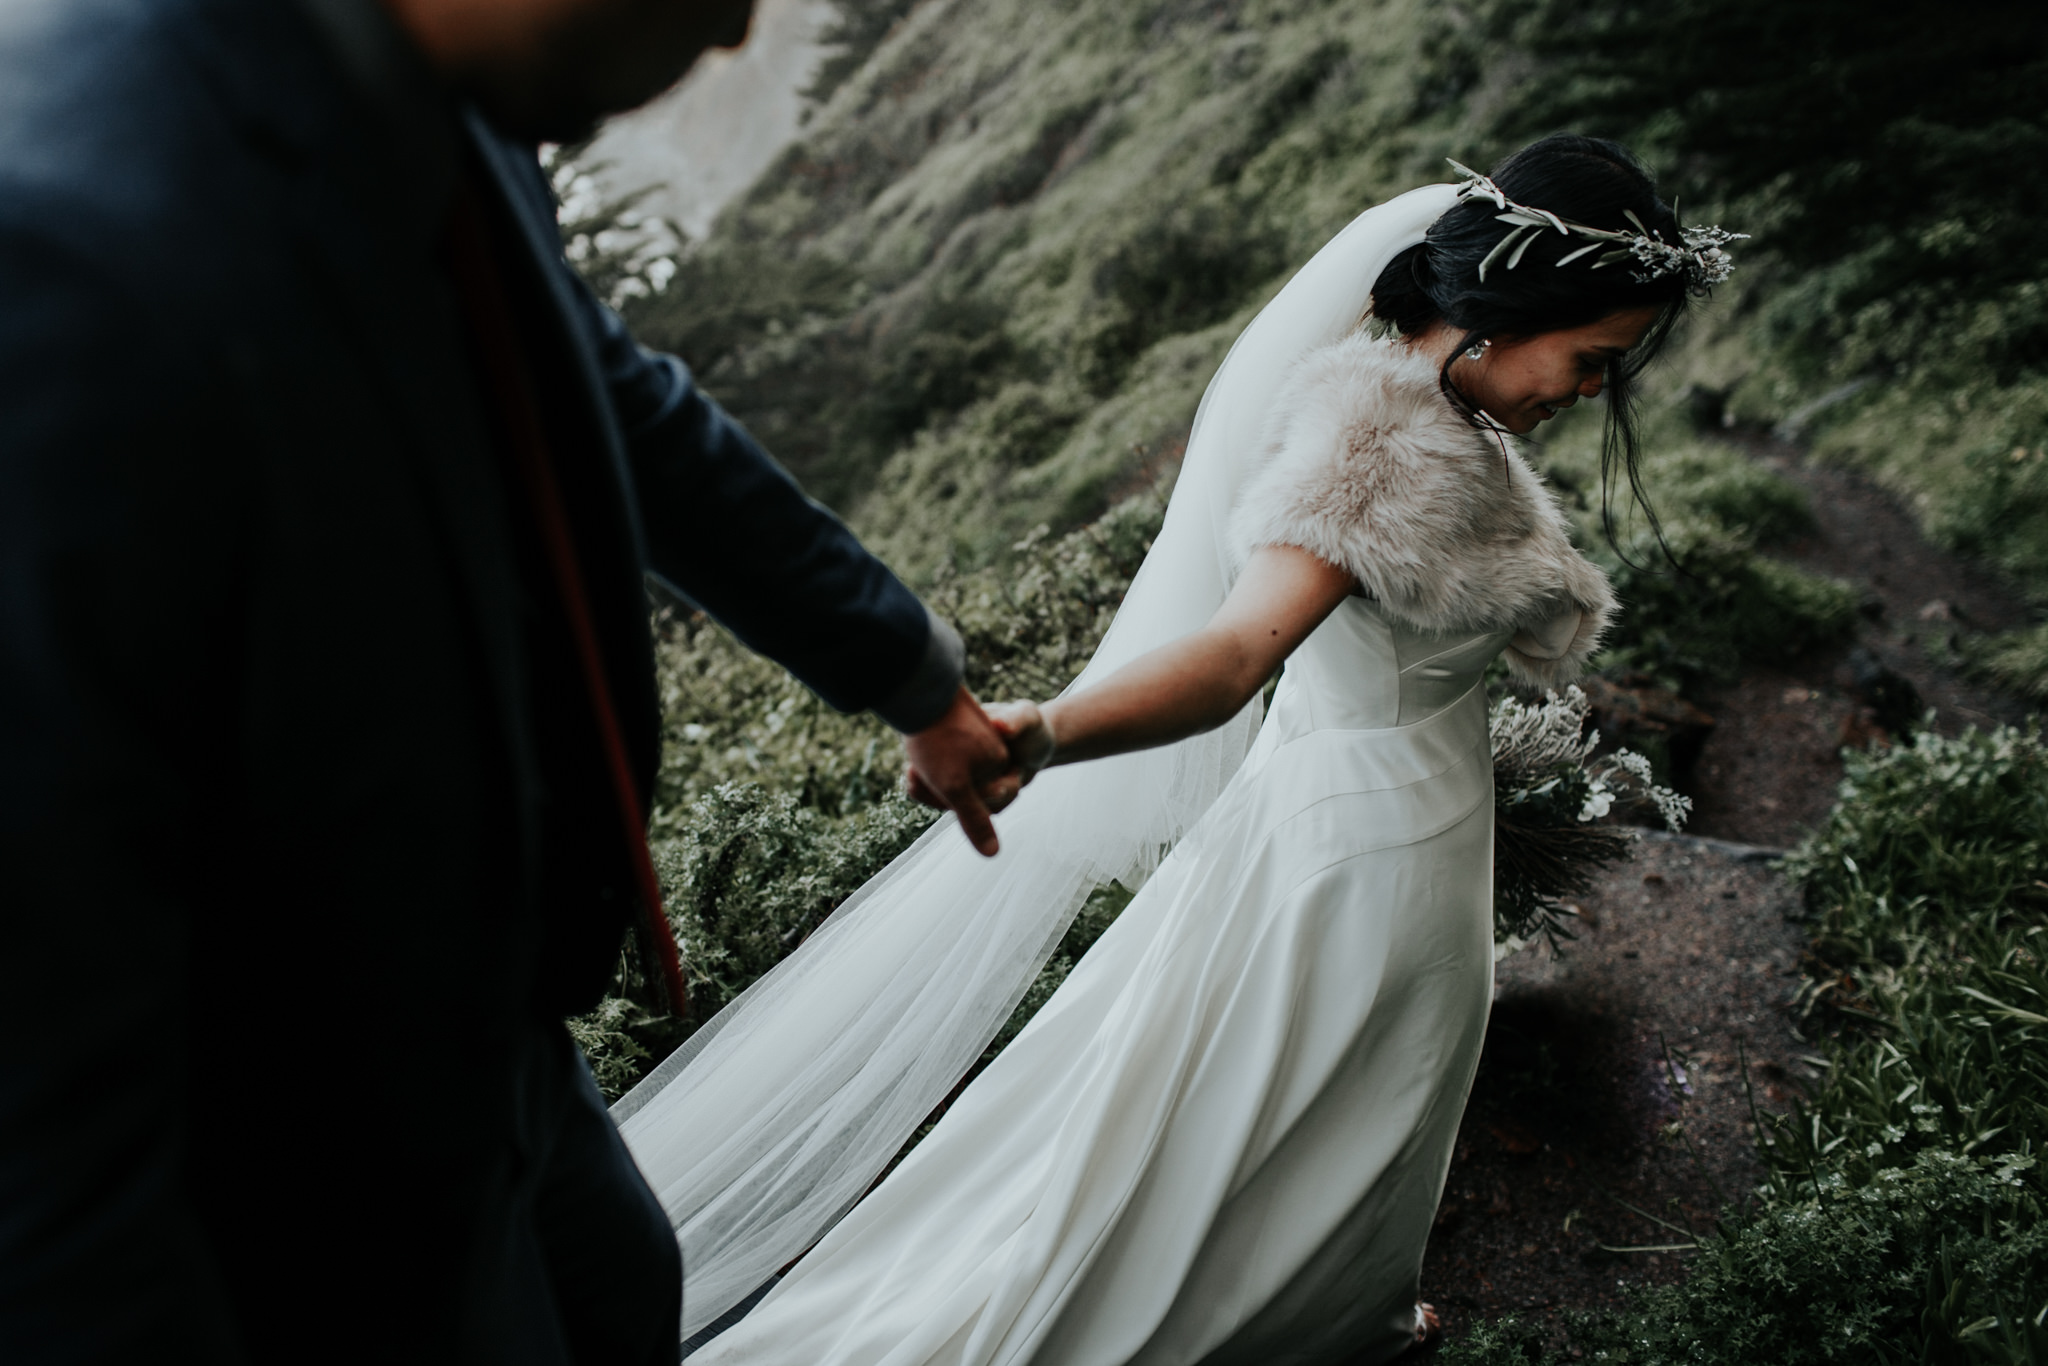 hiking romantics coastal bride and groom winter wedding big sur coast ragged point inn bride and groom walking and holding hands greenery moody